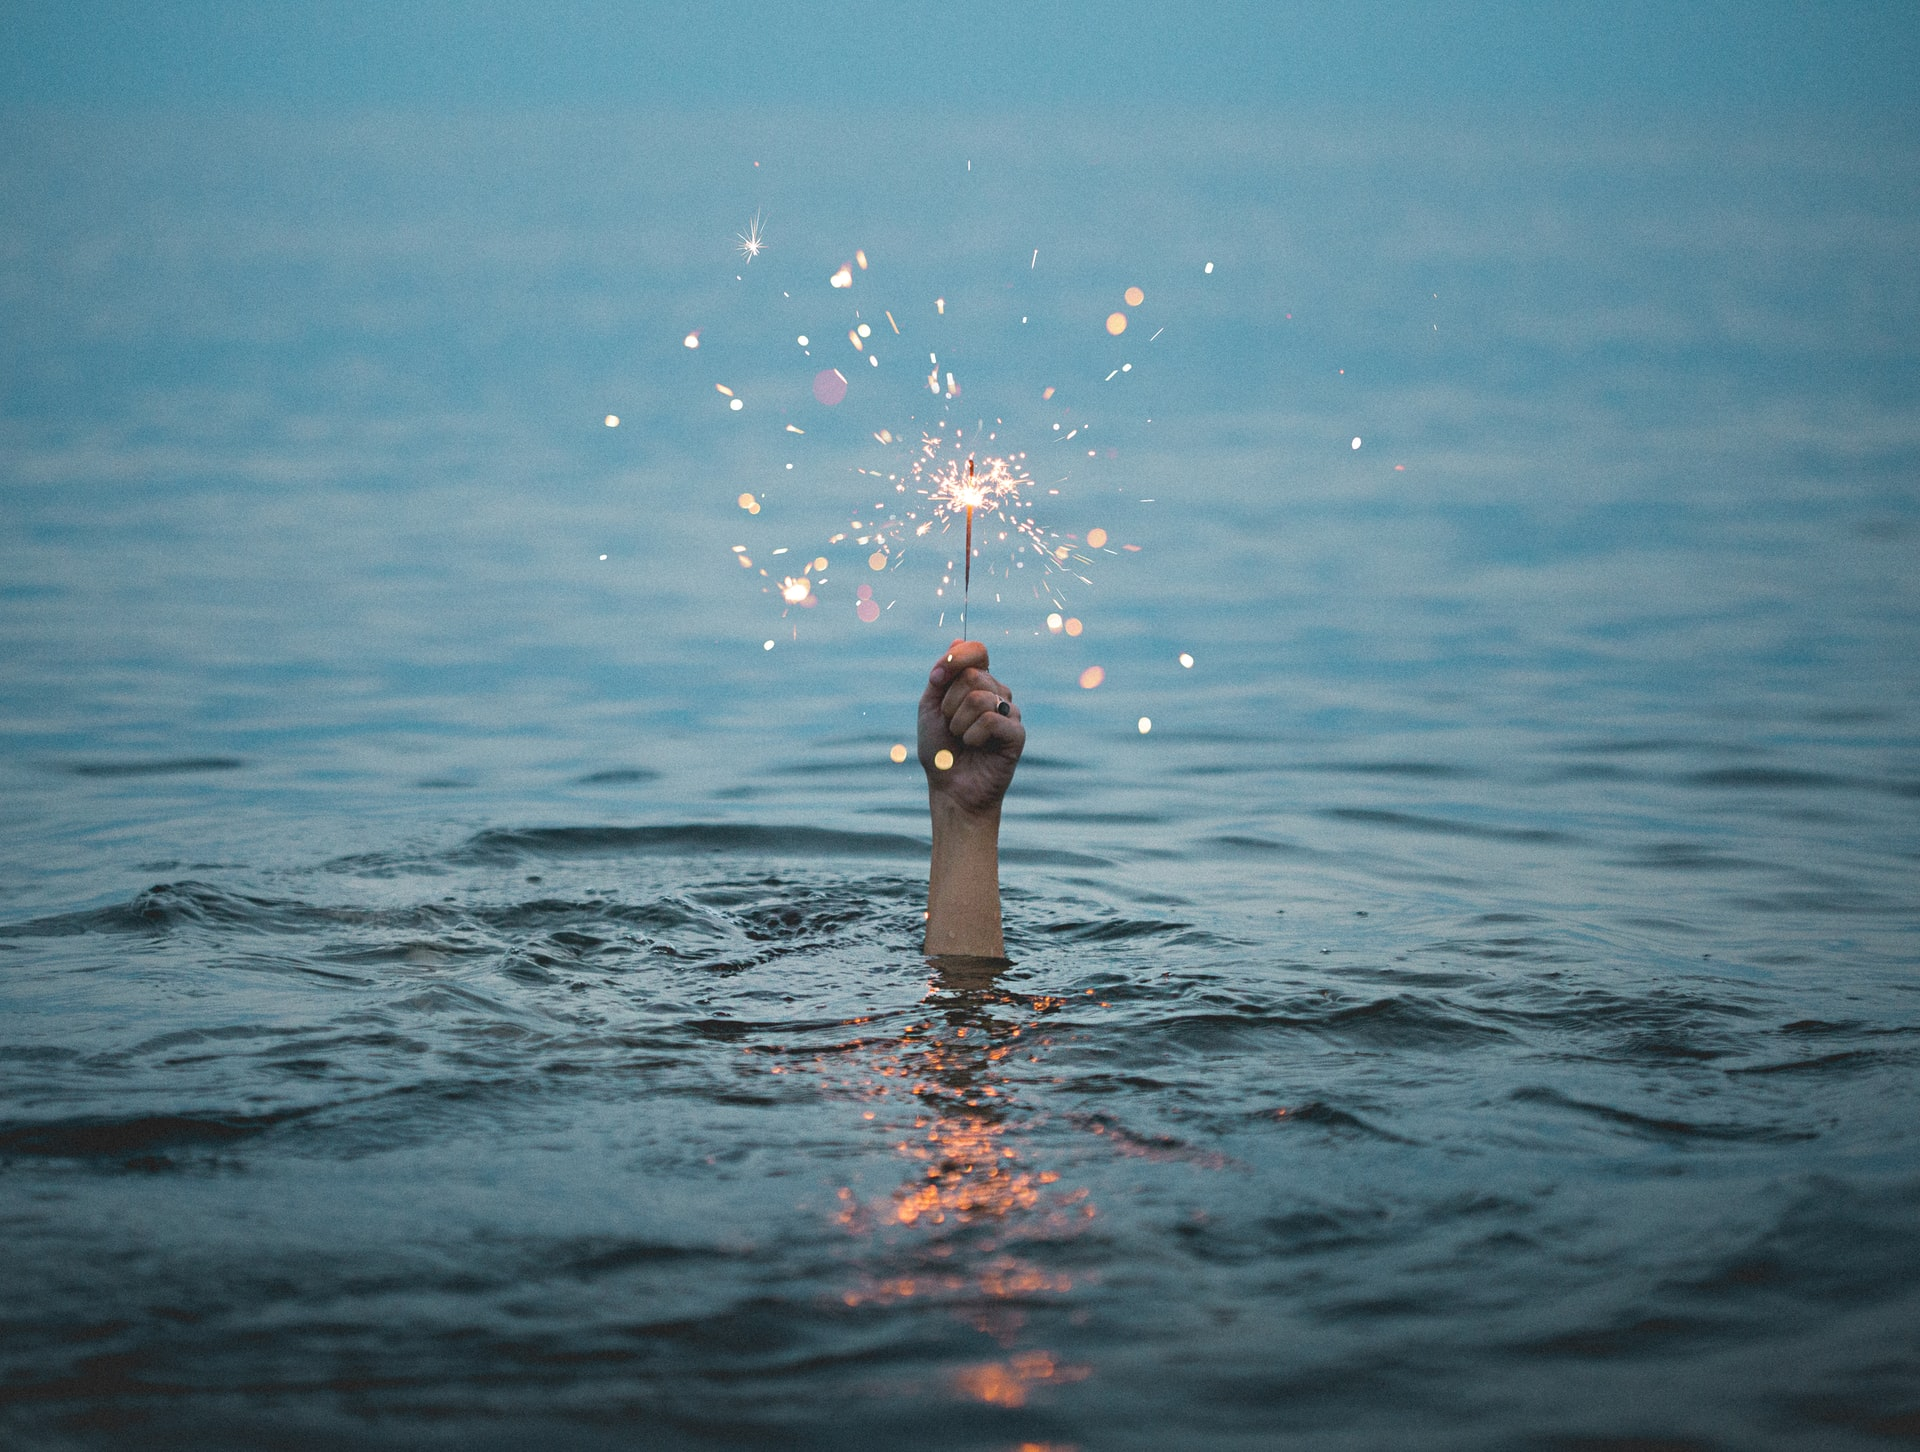 A hand is coming out of some water and is holding a sparkler which is lit.